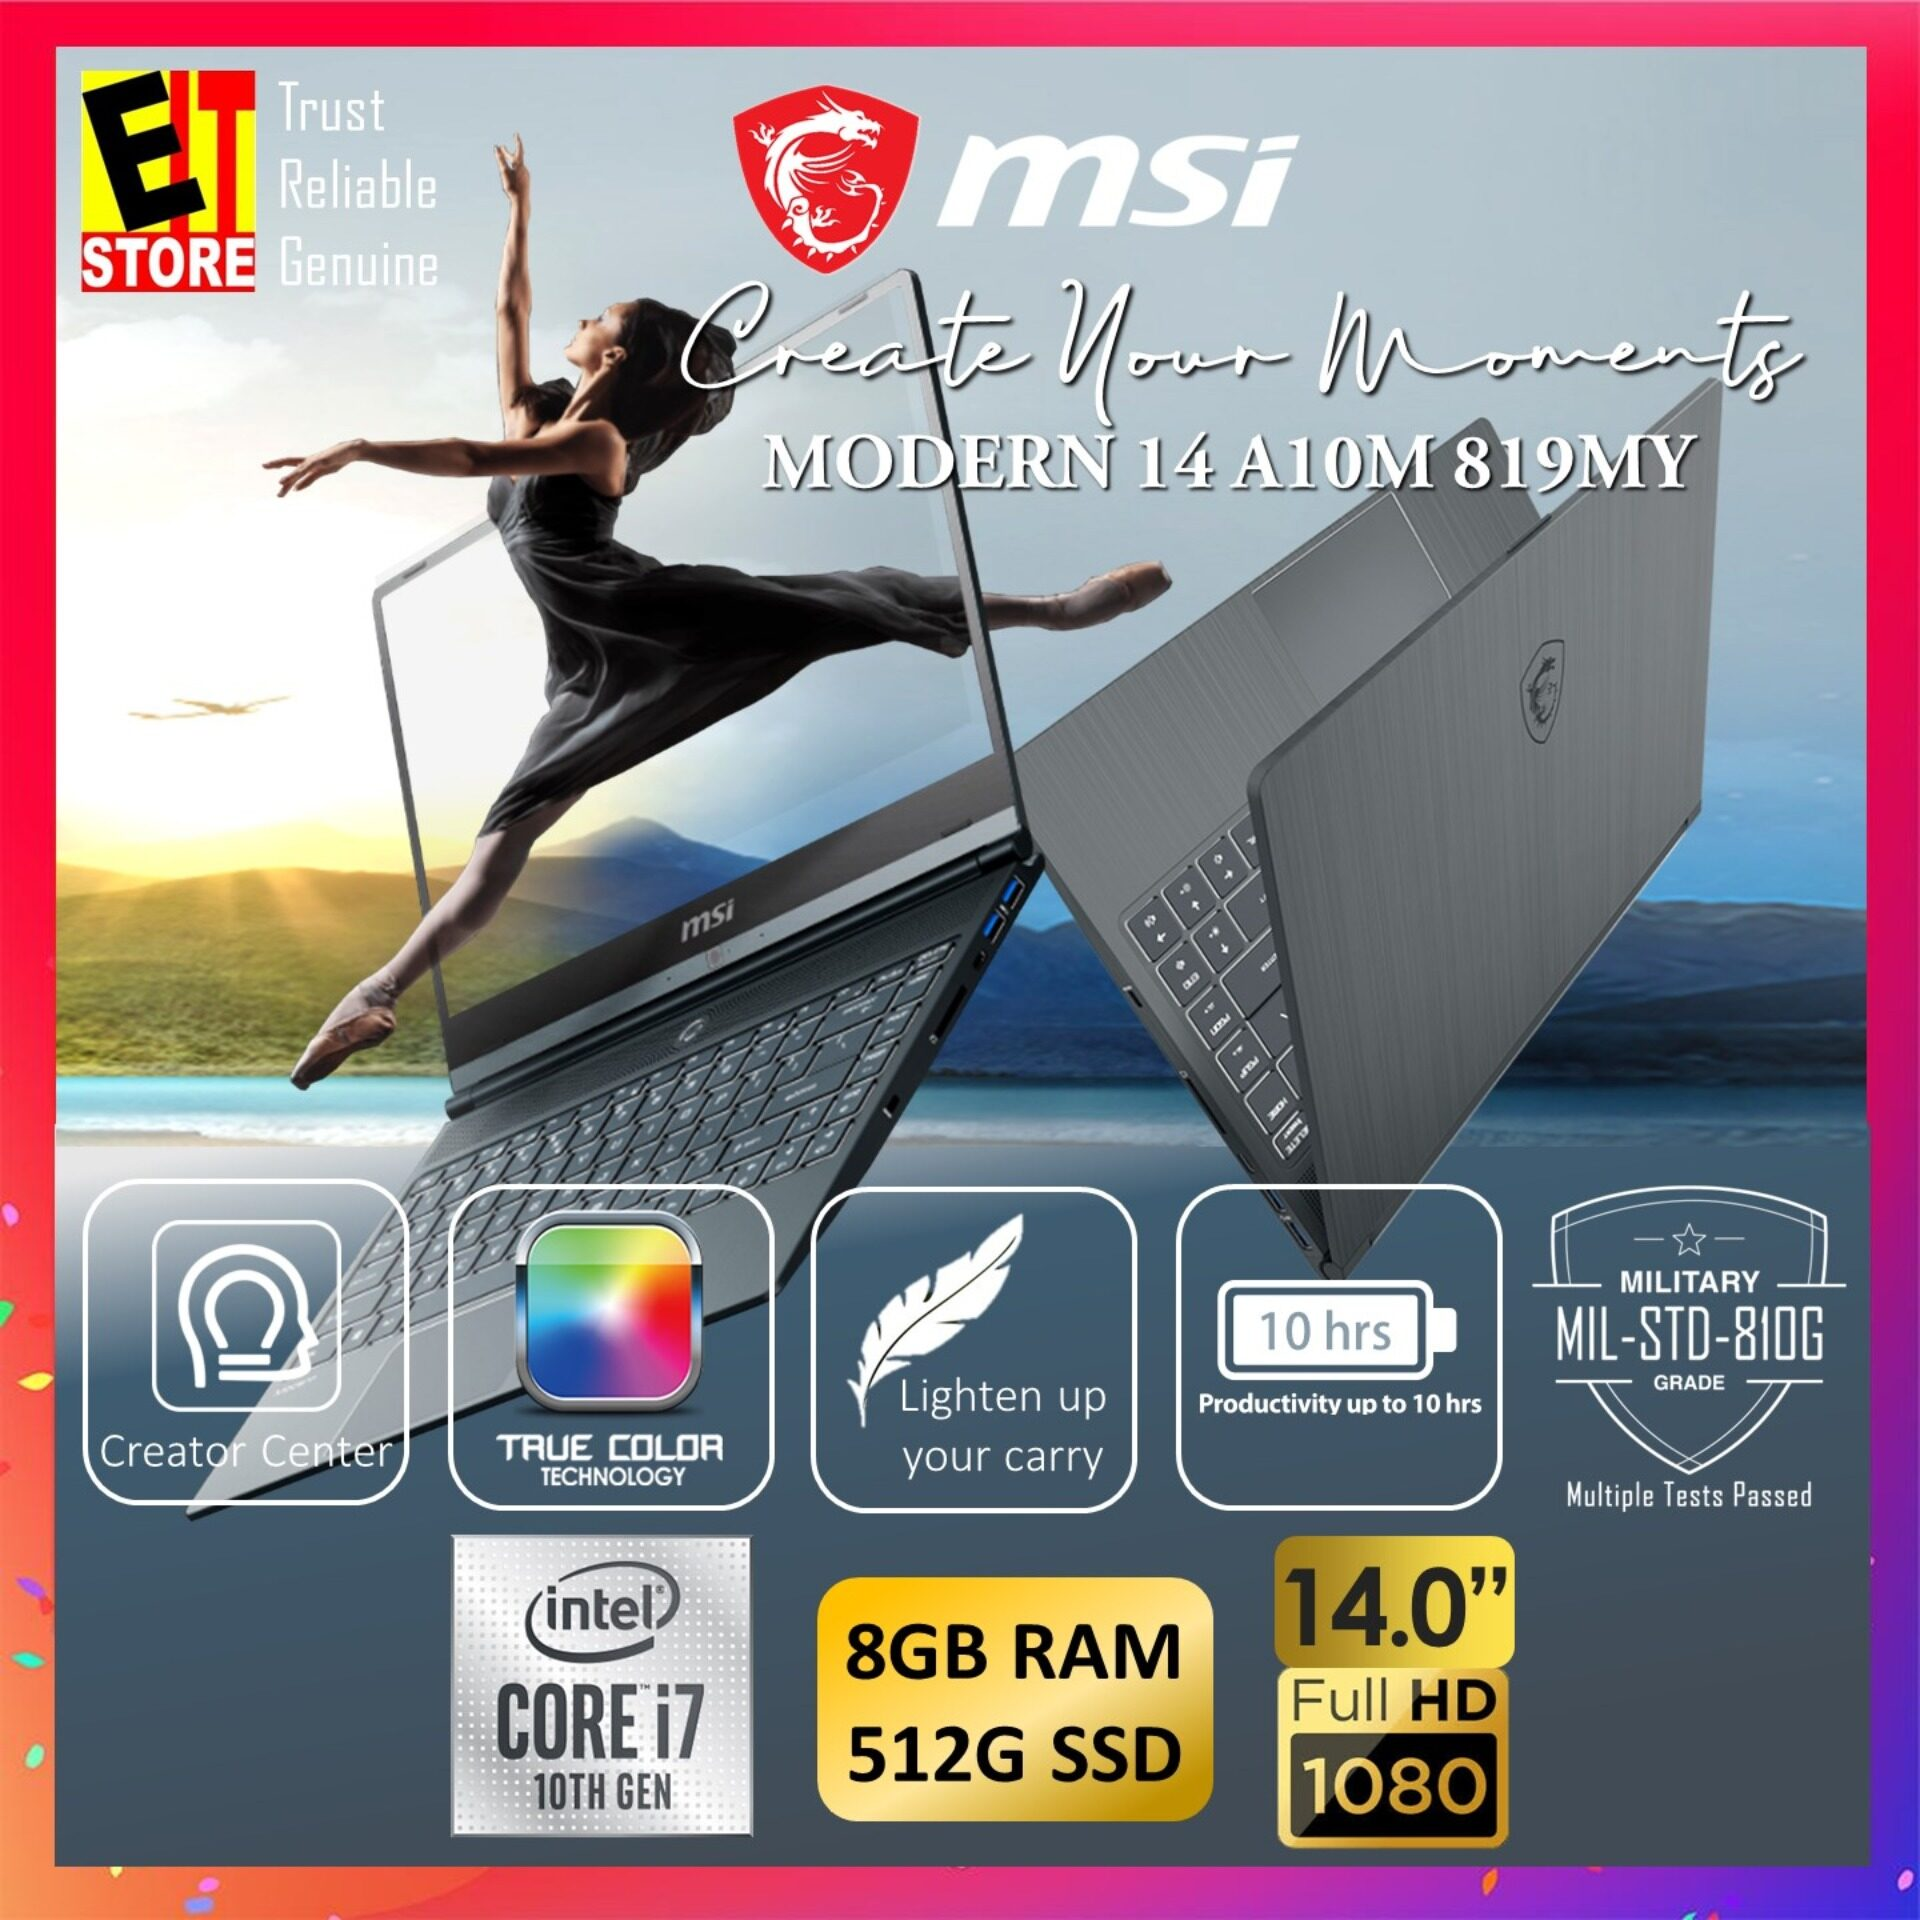 MSI MODERN 14 A10M 670MY CREATION LAPTOP -CARBON GREY (I7-10510U/8GB/512GB SSD/14 FHD/W10/1YR INTERNATIONAL) Malaysia